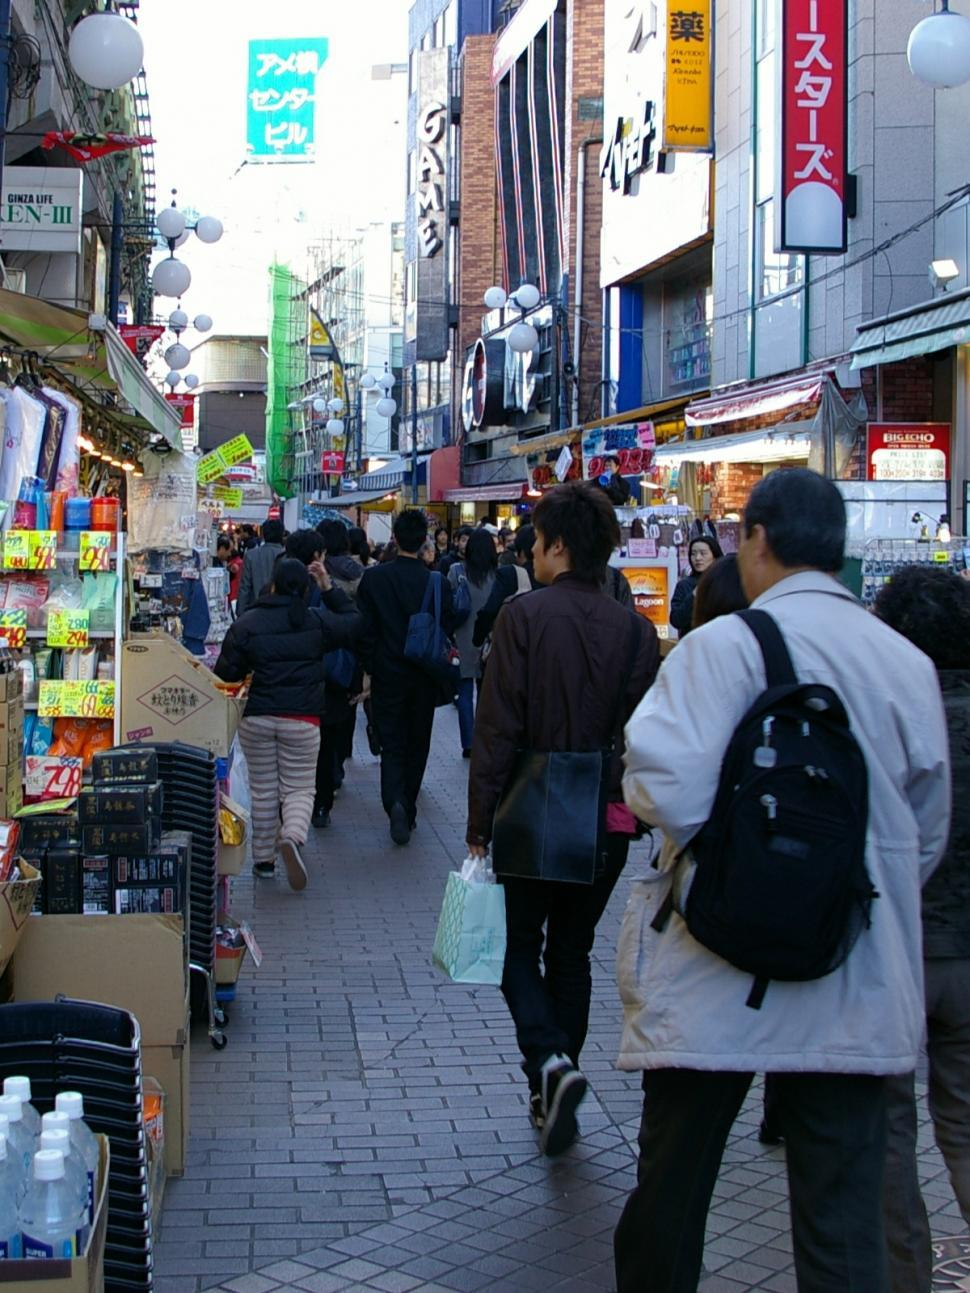 Download Free Stock Photo of Japan Market